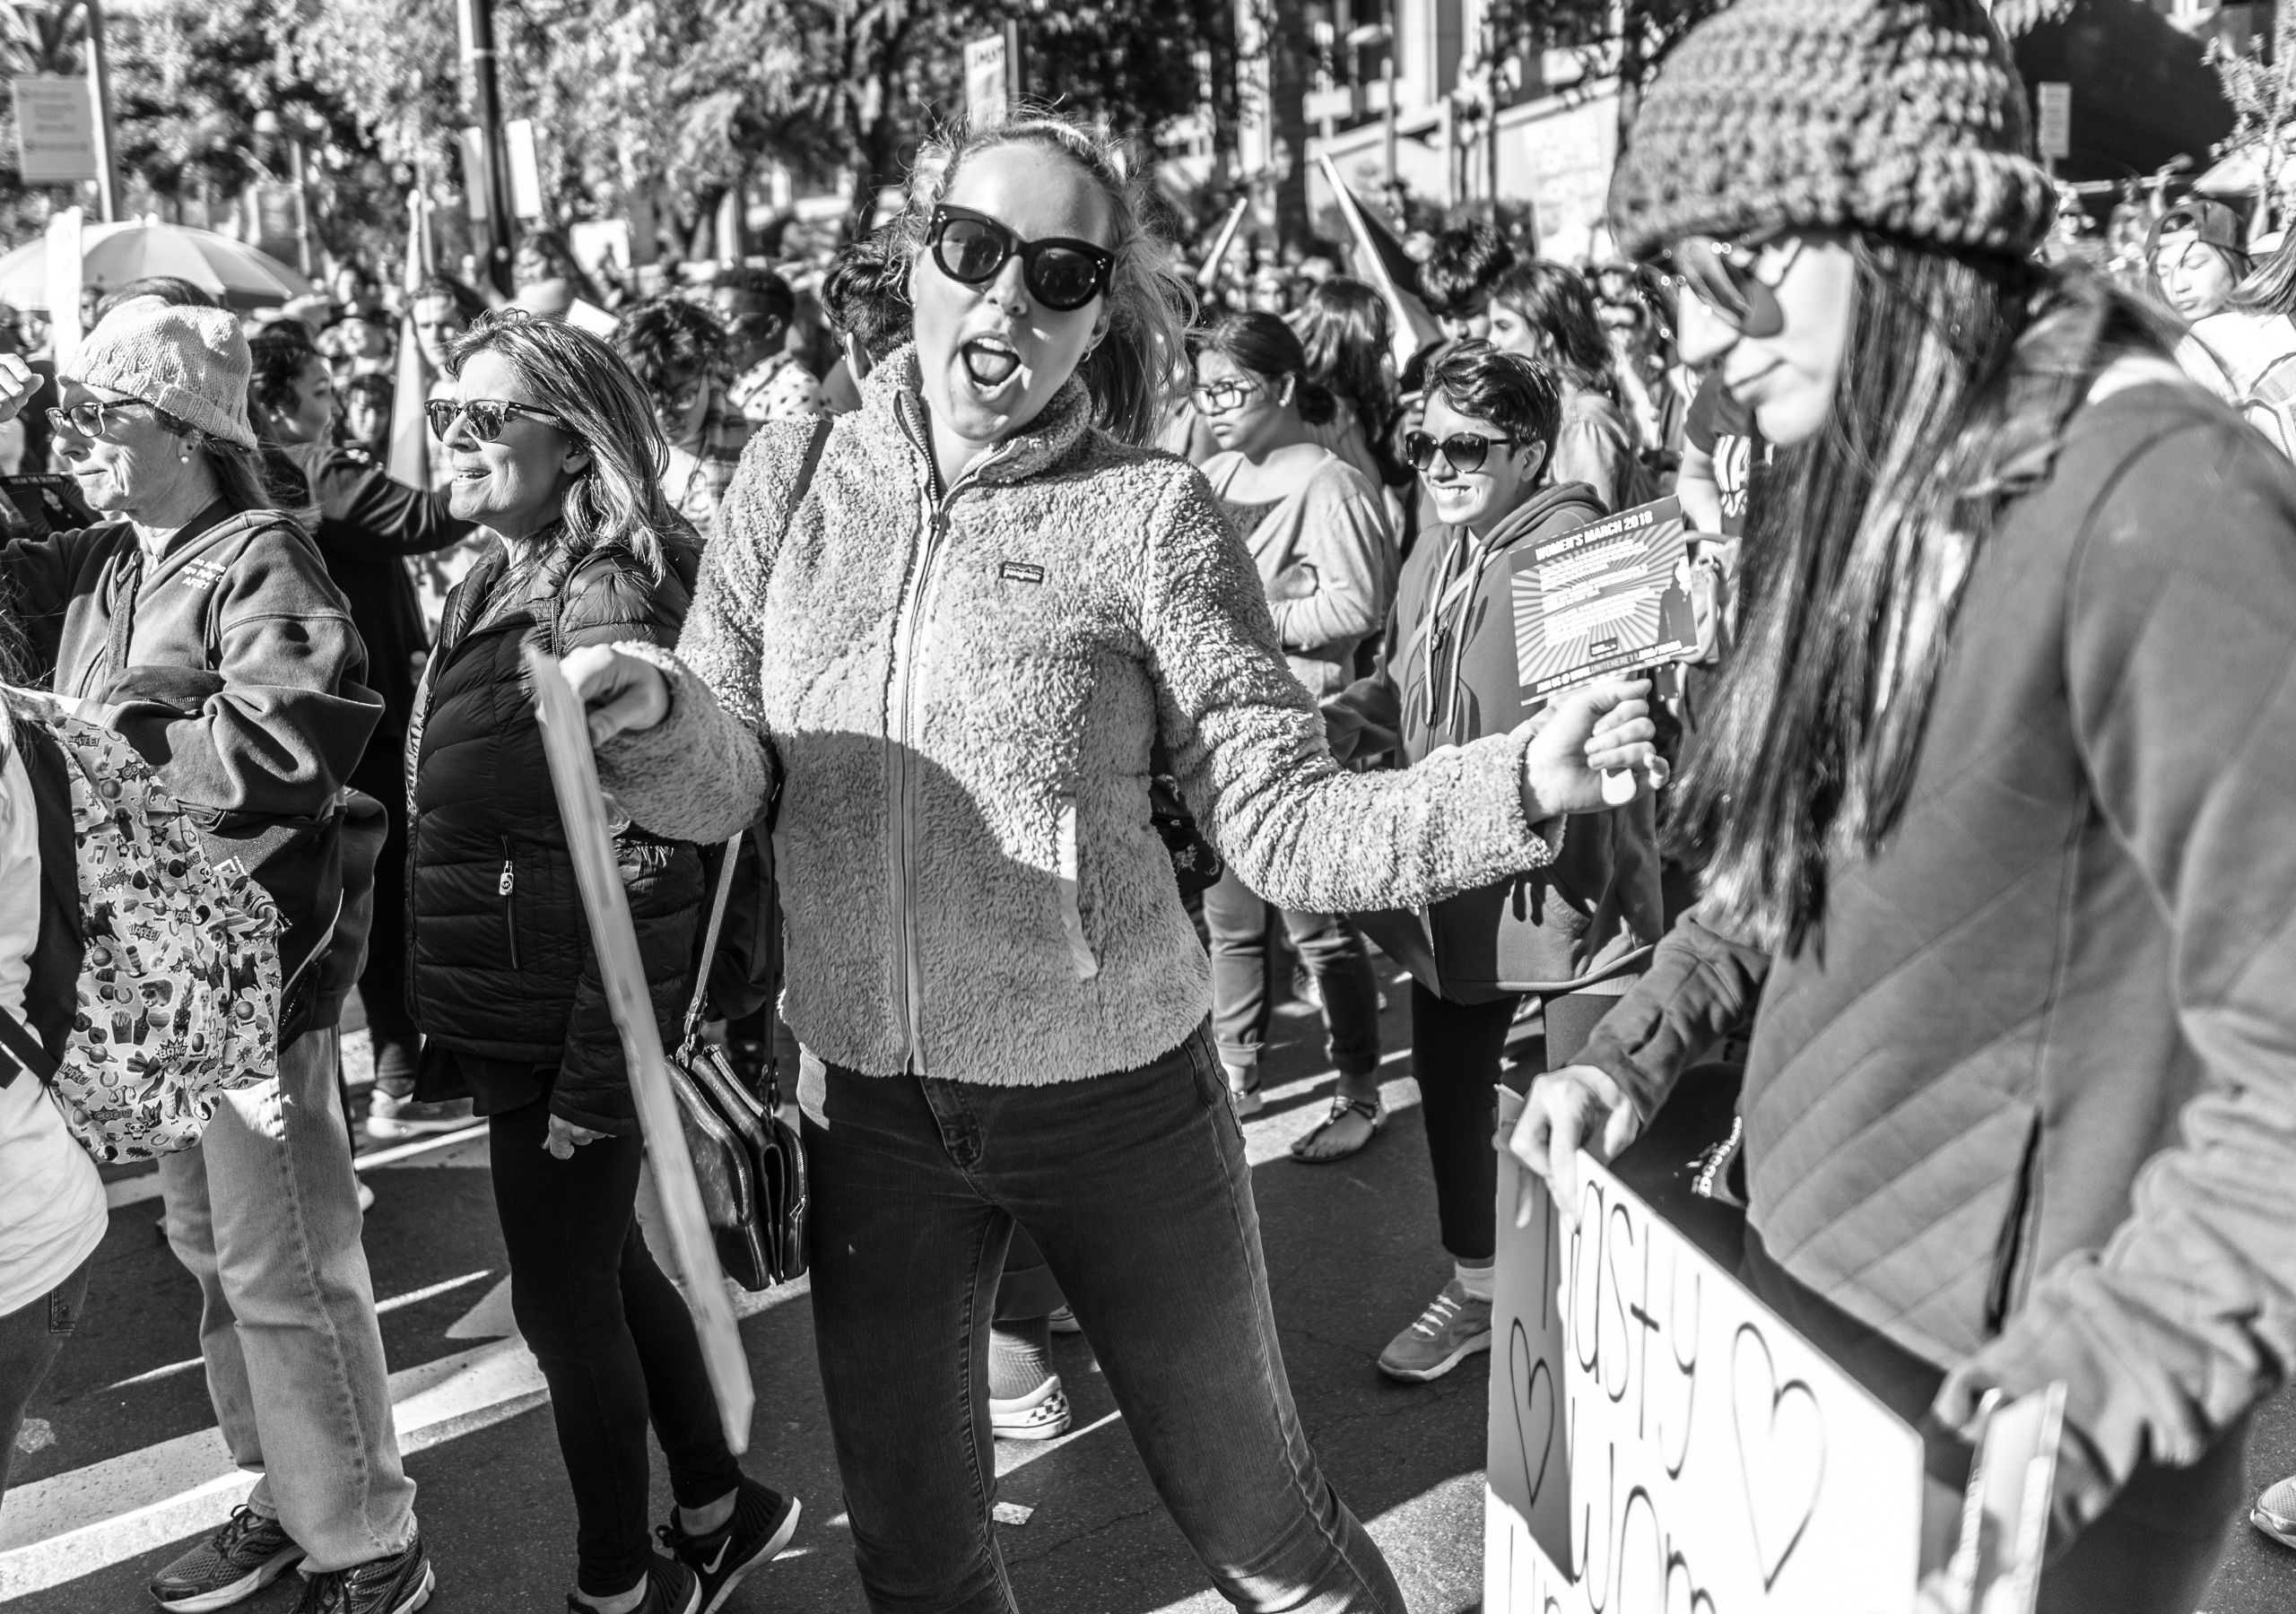 a woman dances in the street at the 2018 Los Angeles Women's March